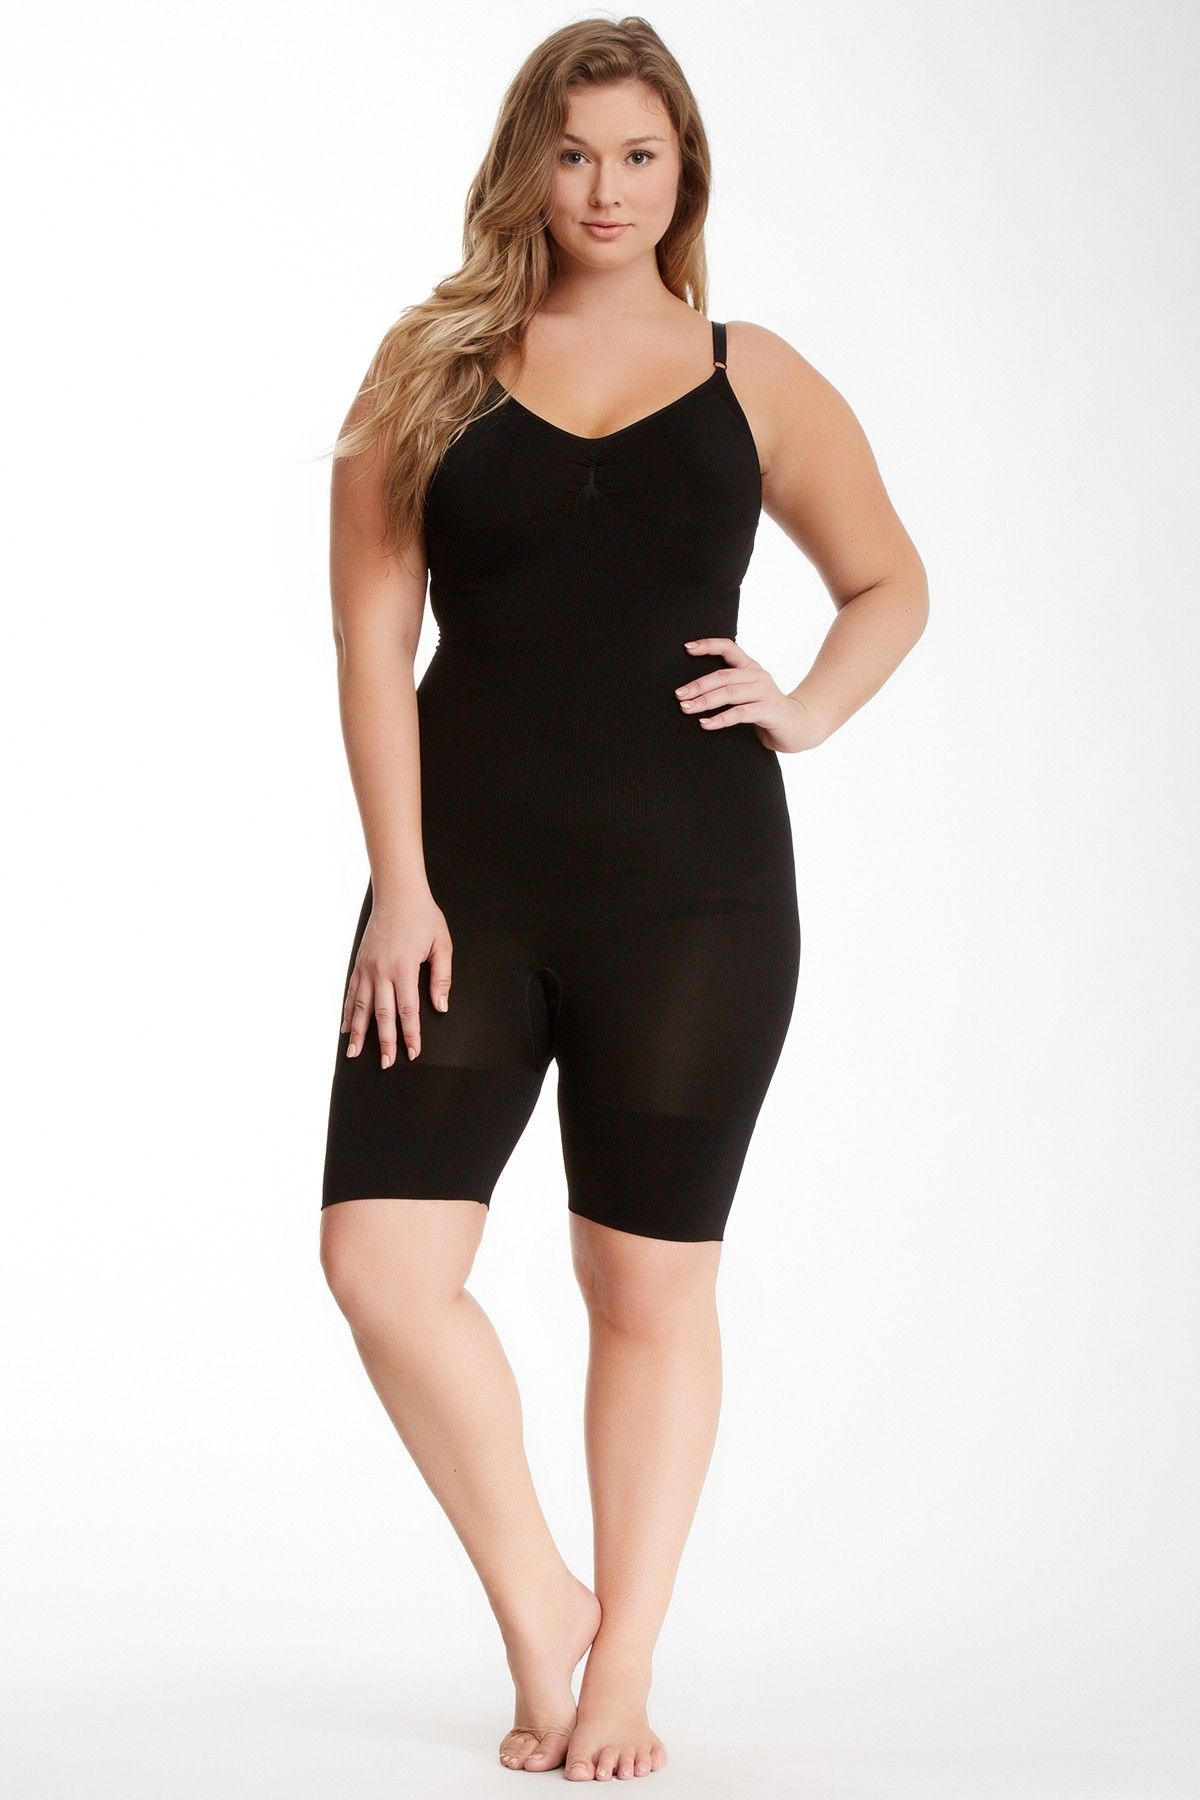 Regular Boxer Body Shaper (Plus Size) | Shapewear, France and Nordstrom